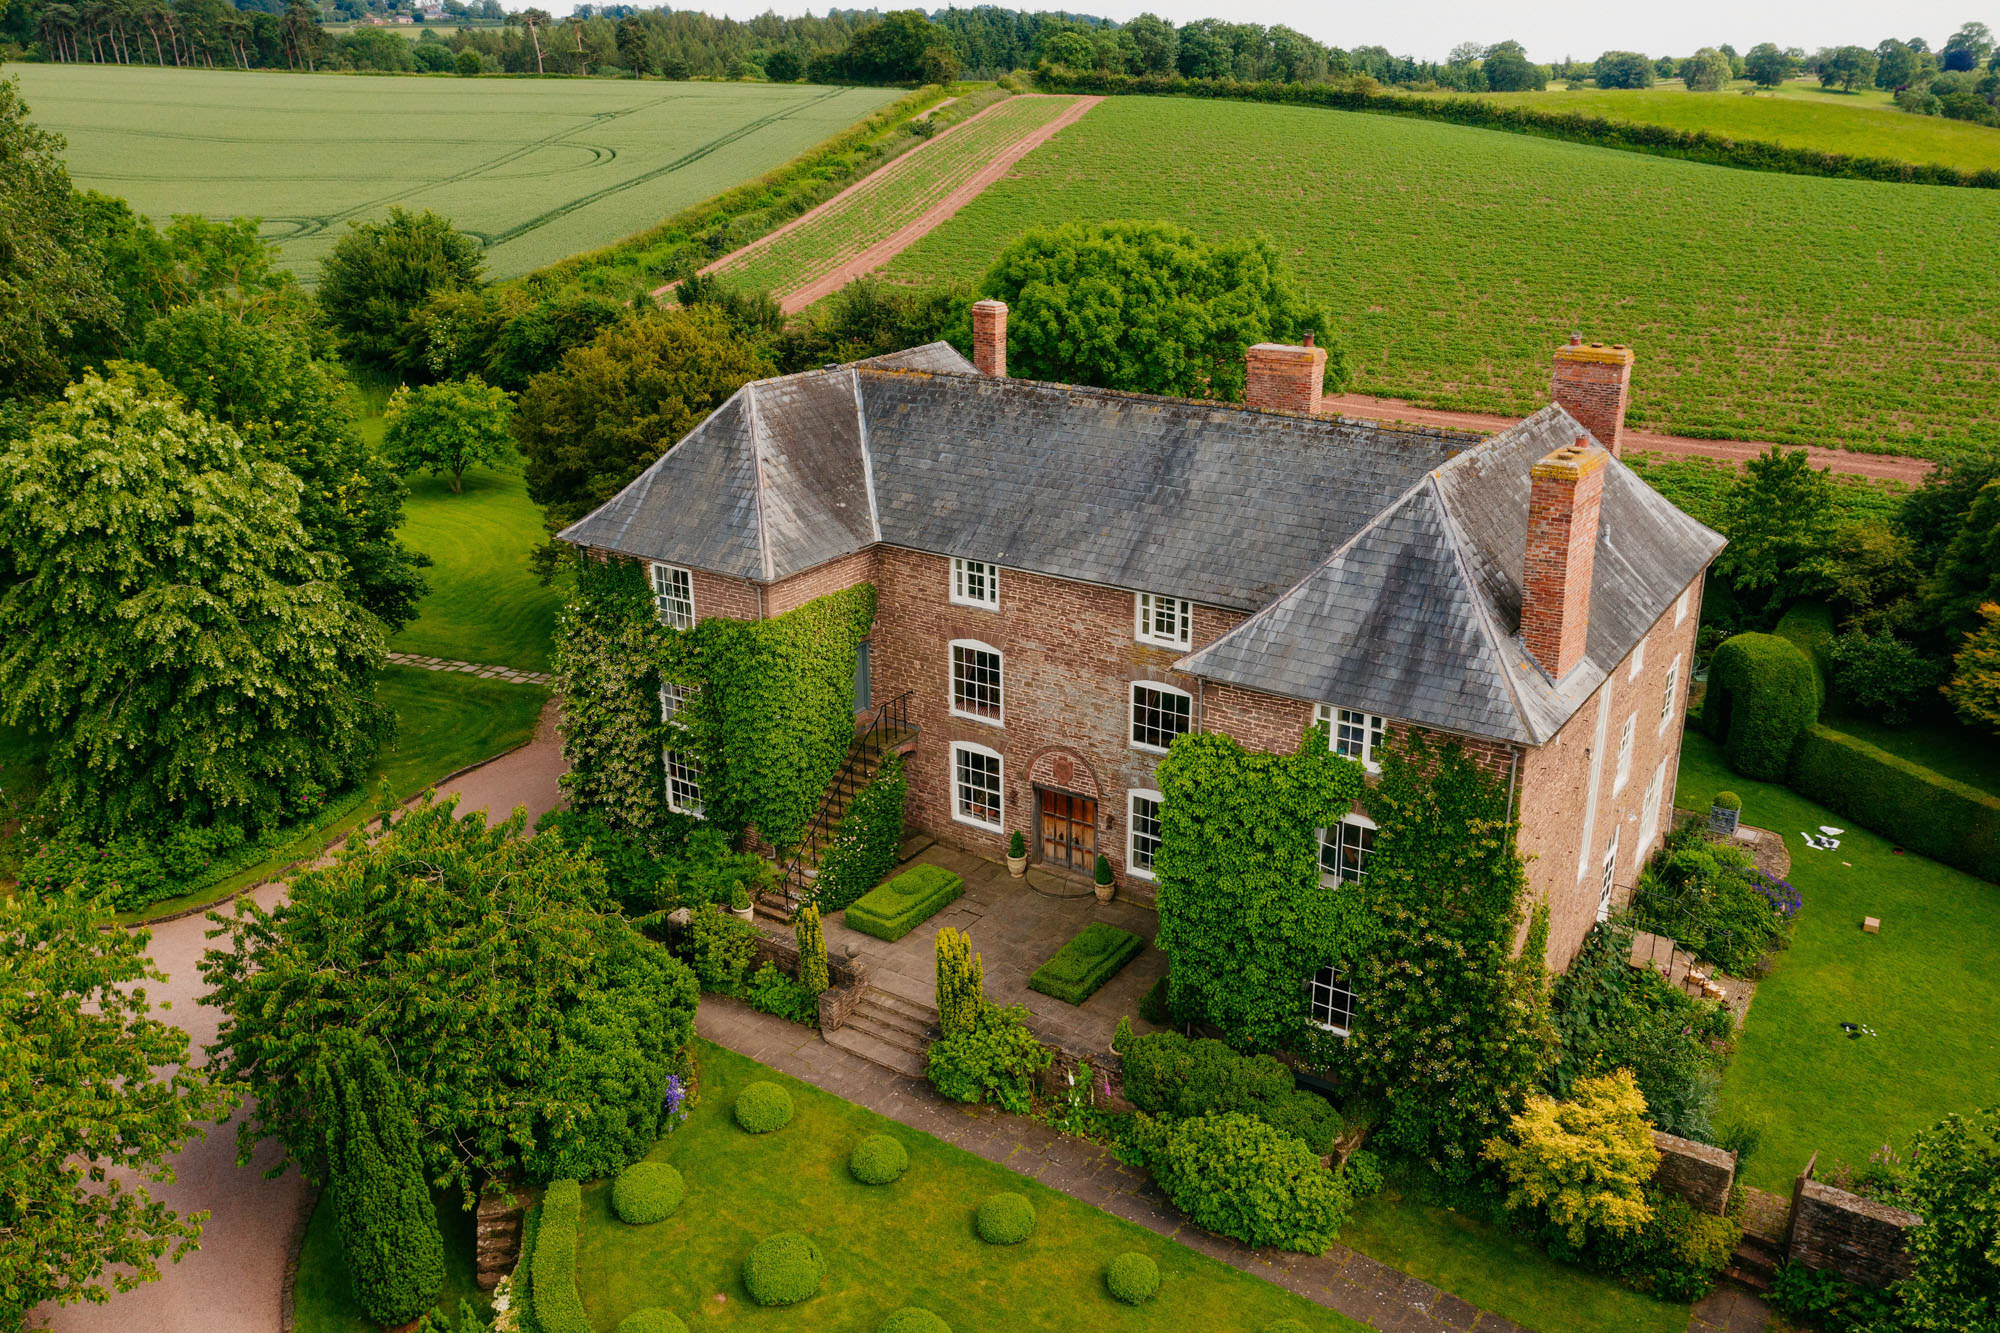 Dewsall Court - Countryside Wedding Venue in Herefordshire